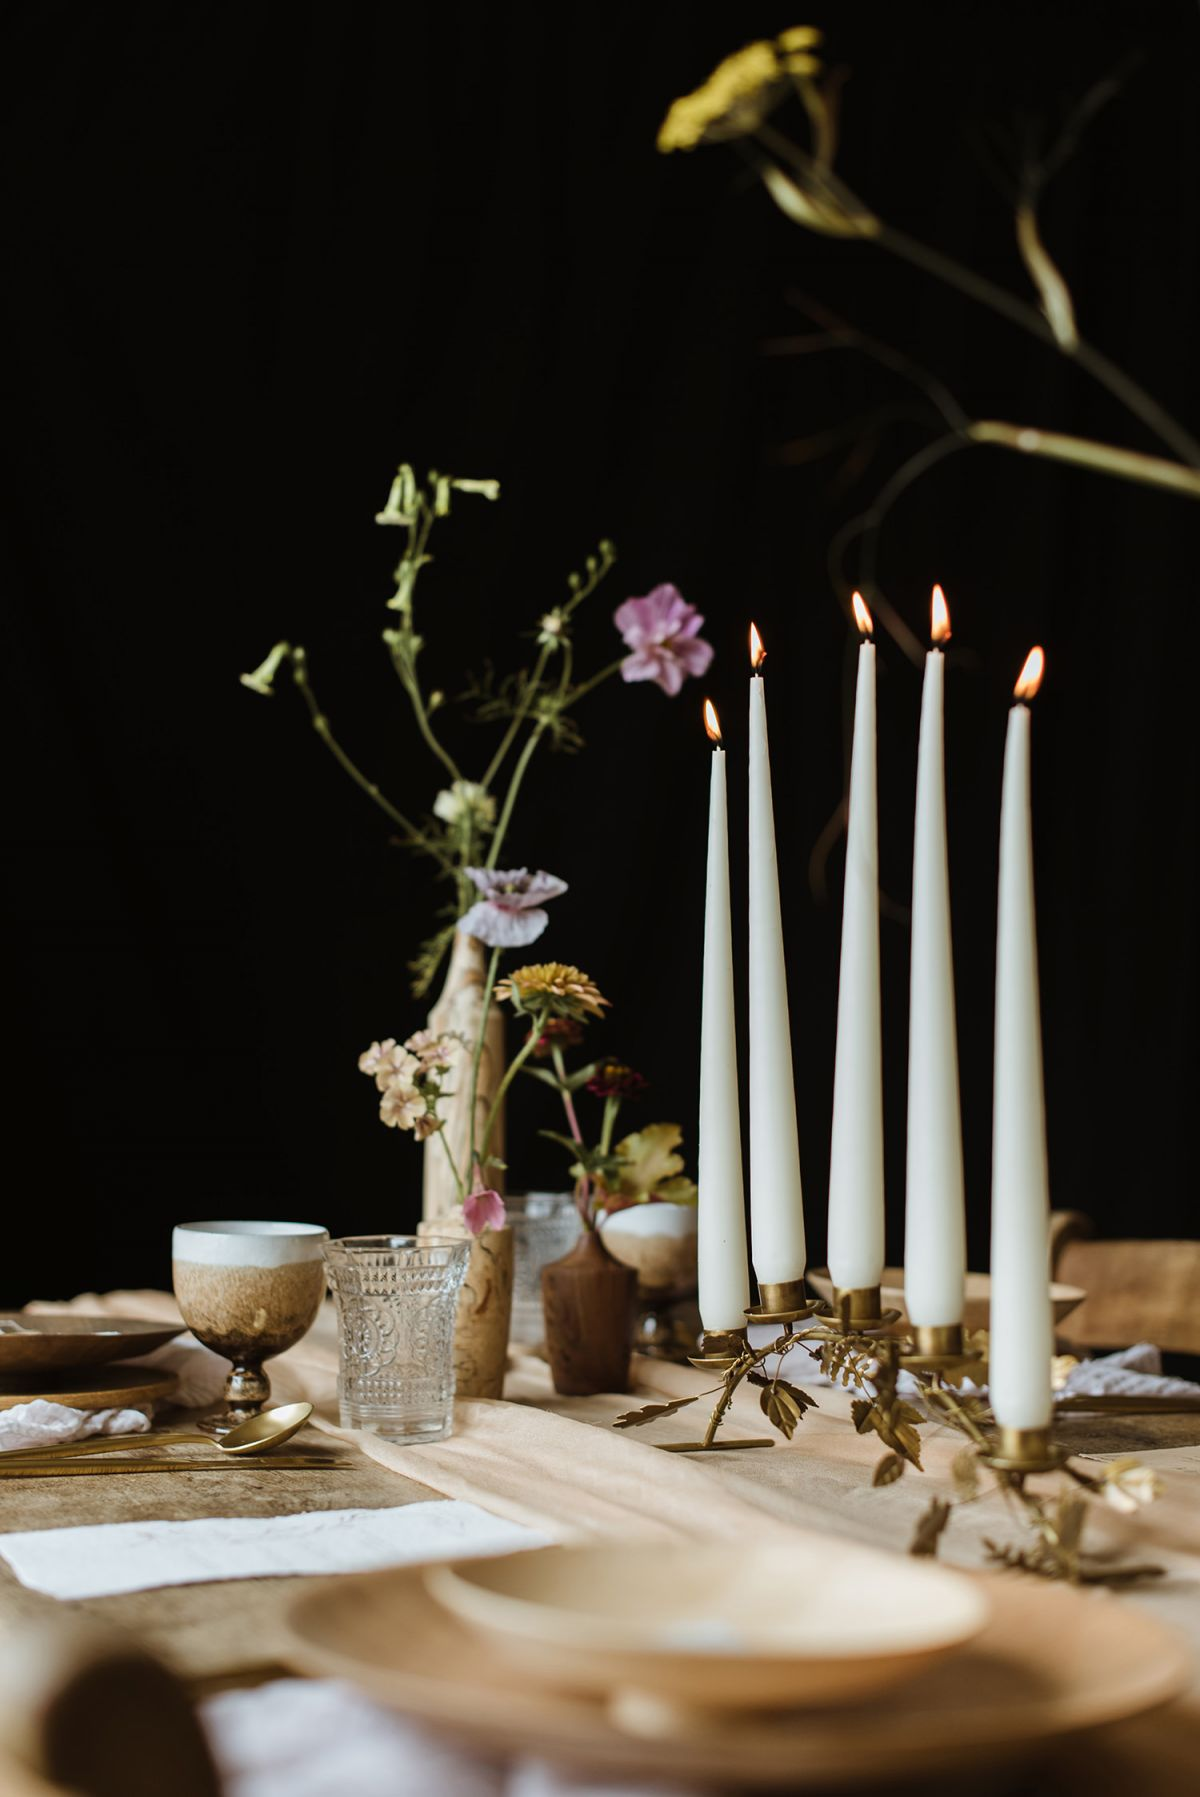 Tablescape created by Stylist for intimate wedding